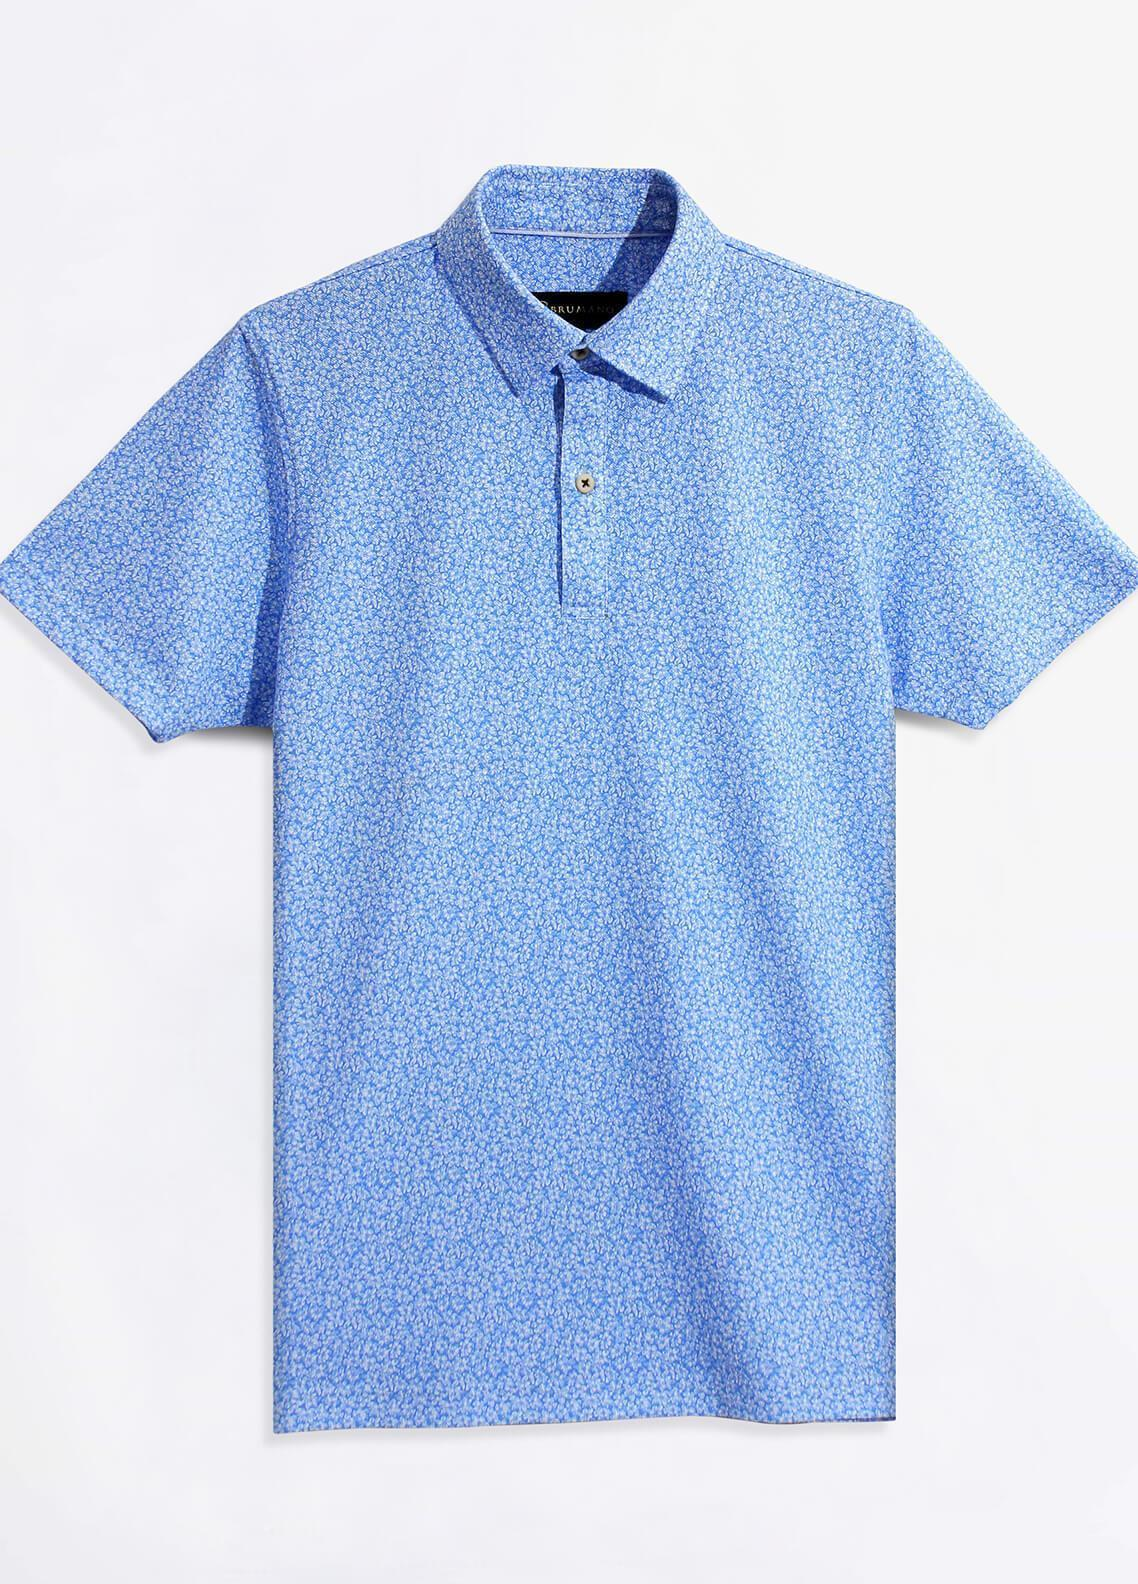 Brumano Cotton Polo Shirts for Men - Blue BRM-41-982